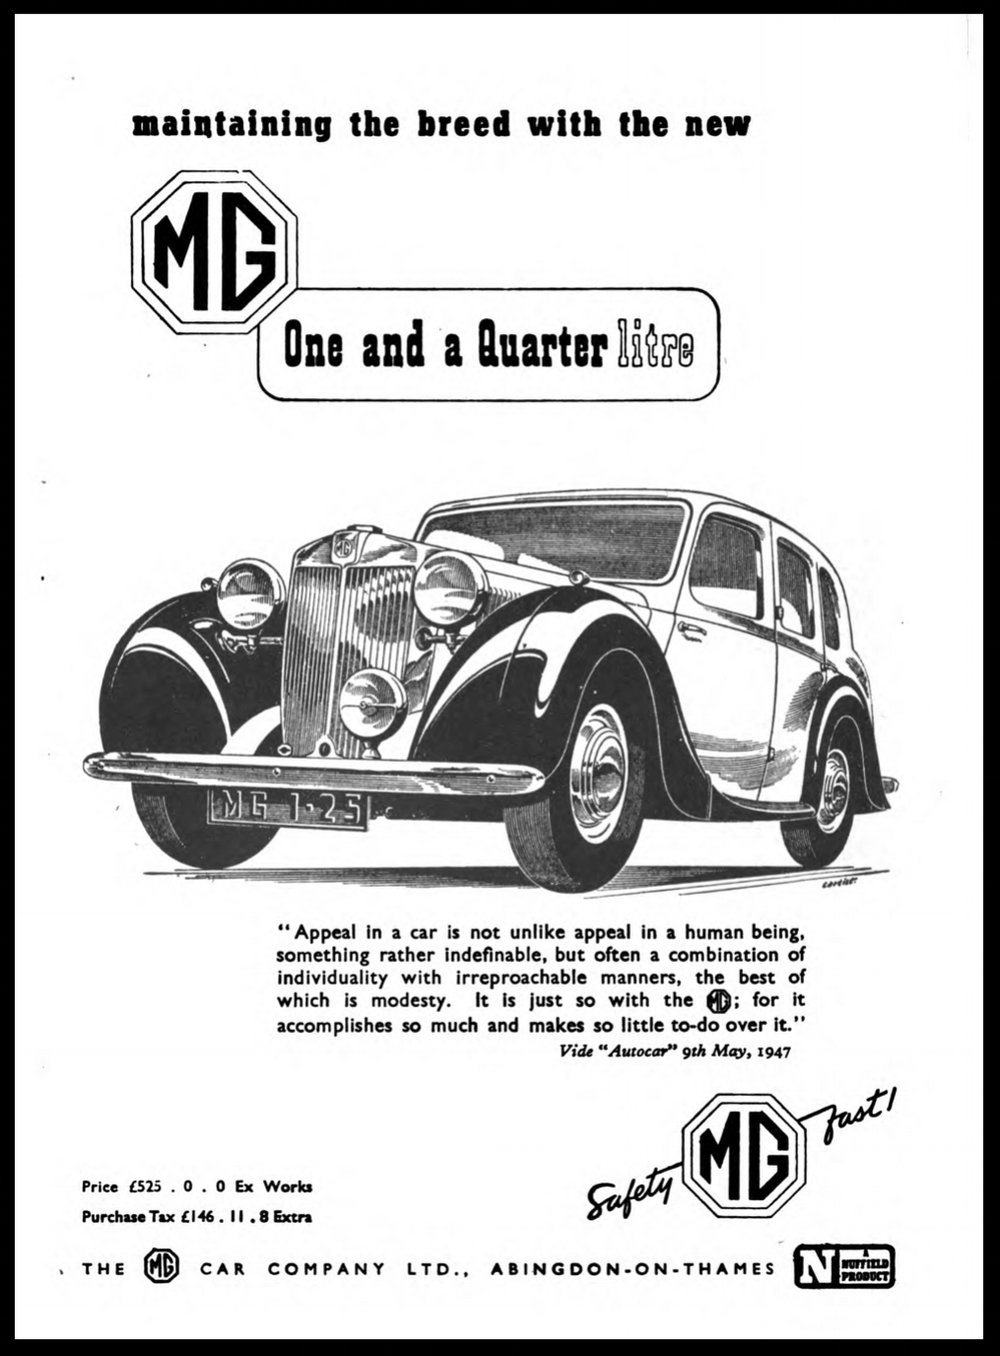 MG Triumph Sunbeam Jag - All British Cars — The Bowsing Ken